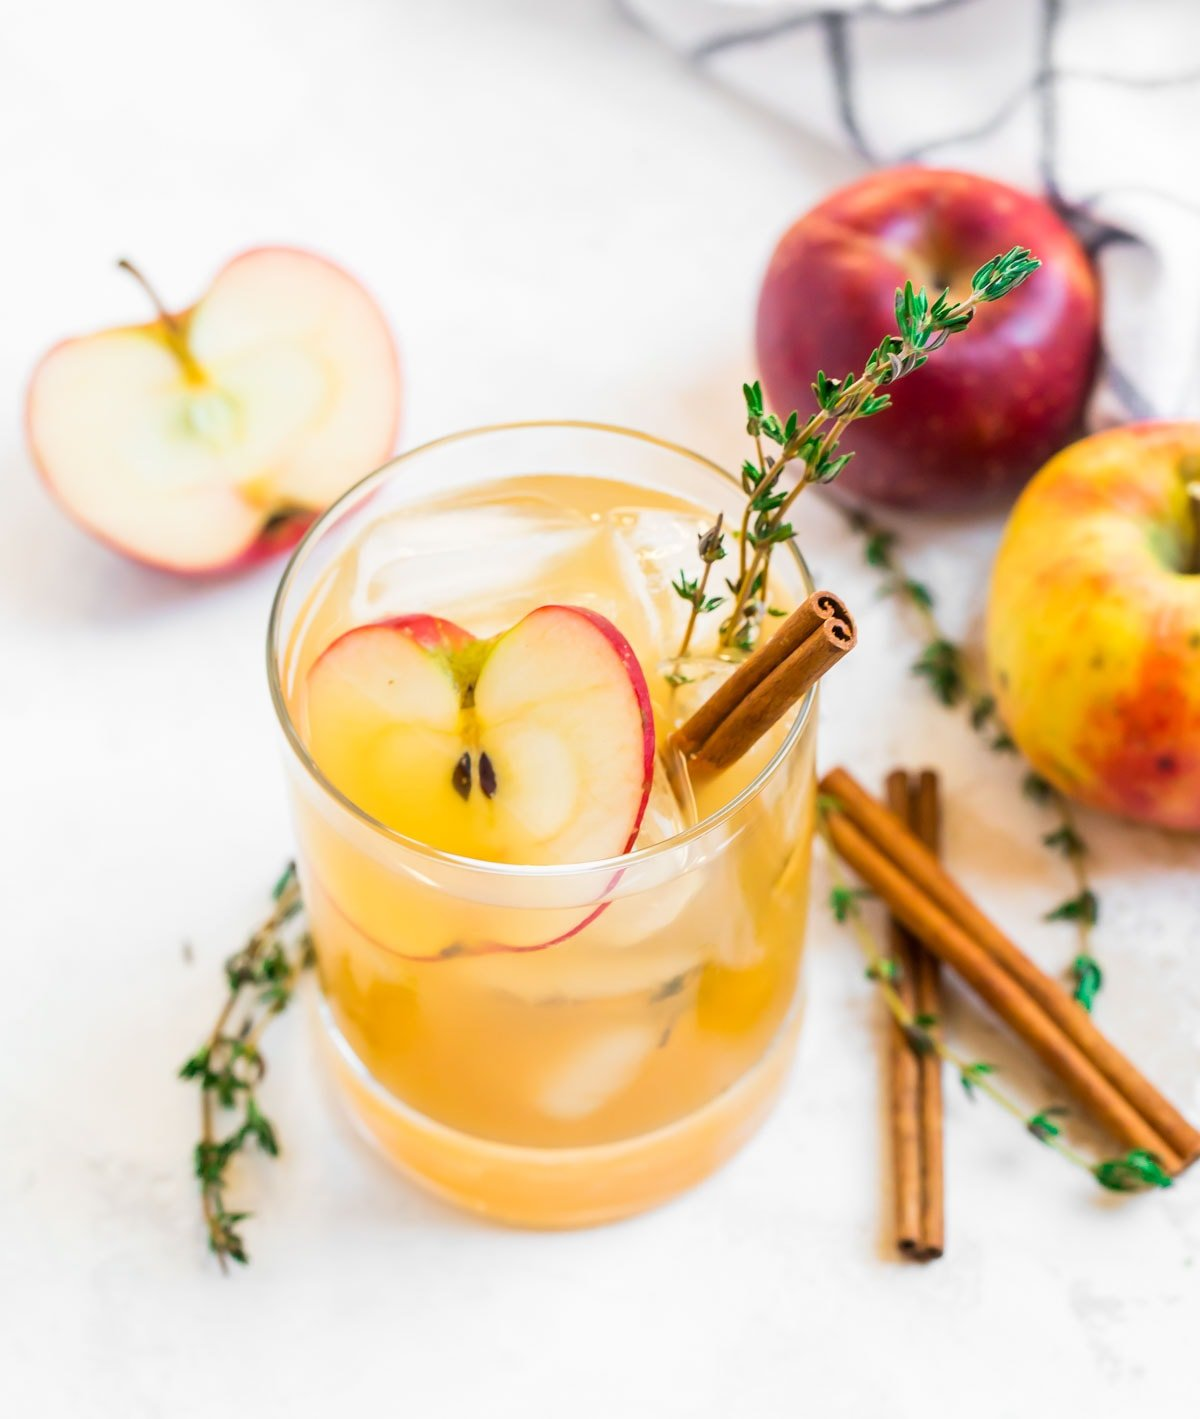 Apple cider cocktail with cinnamon sticks